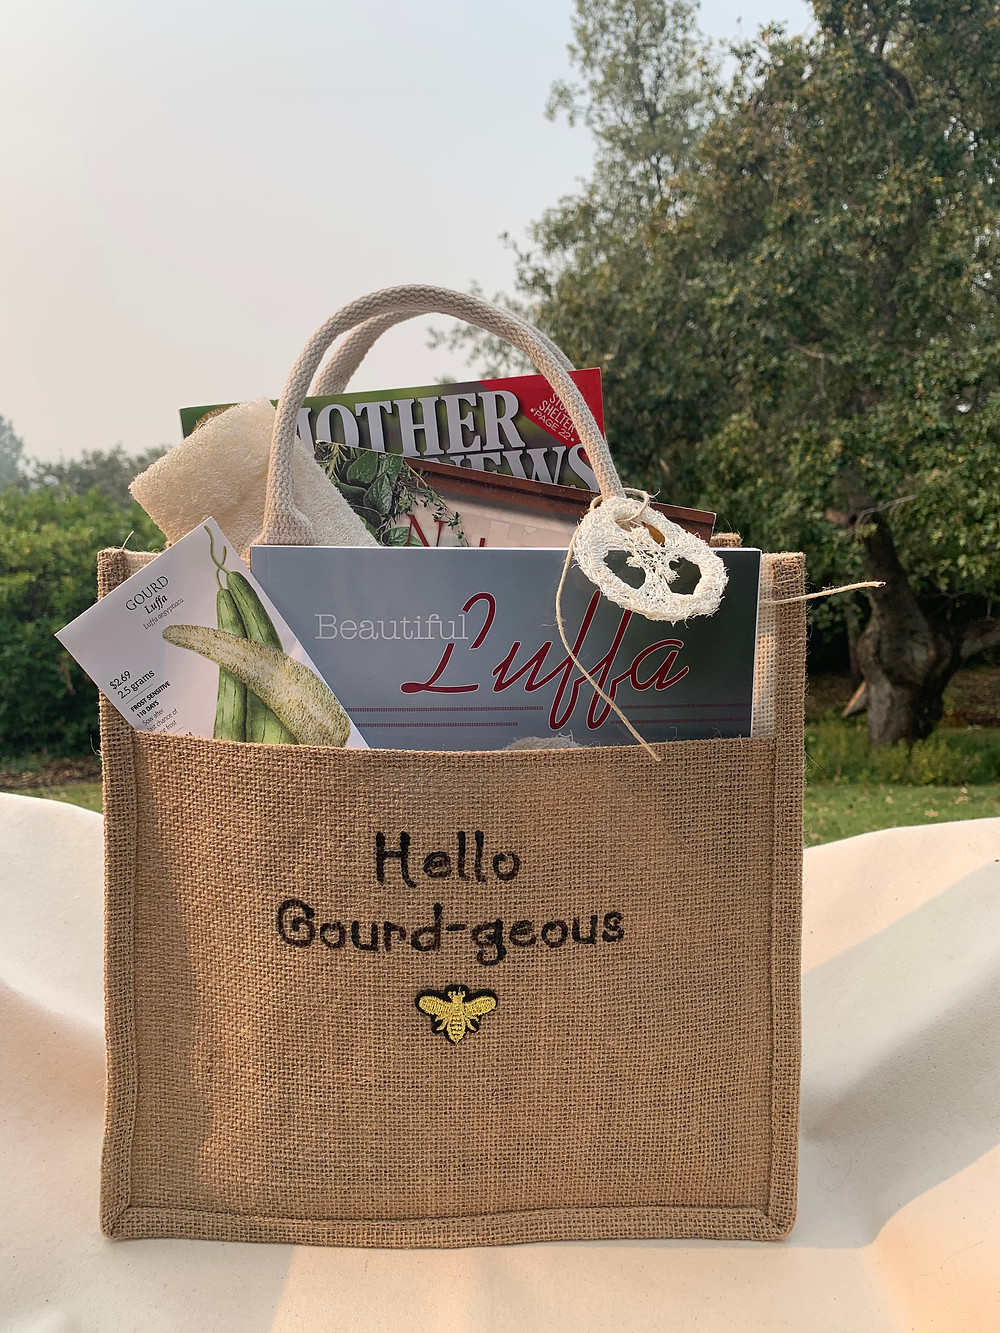 Beautiful Luffa gift bag available at JaniceCox.com